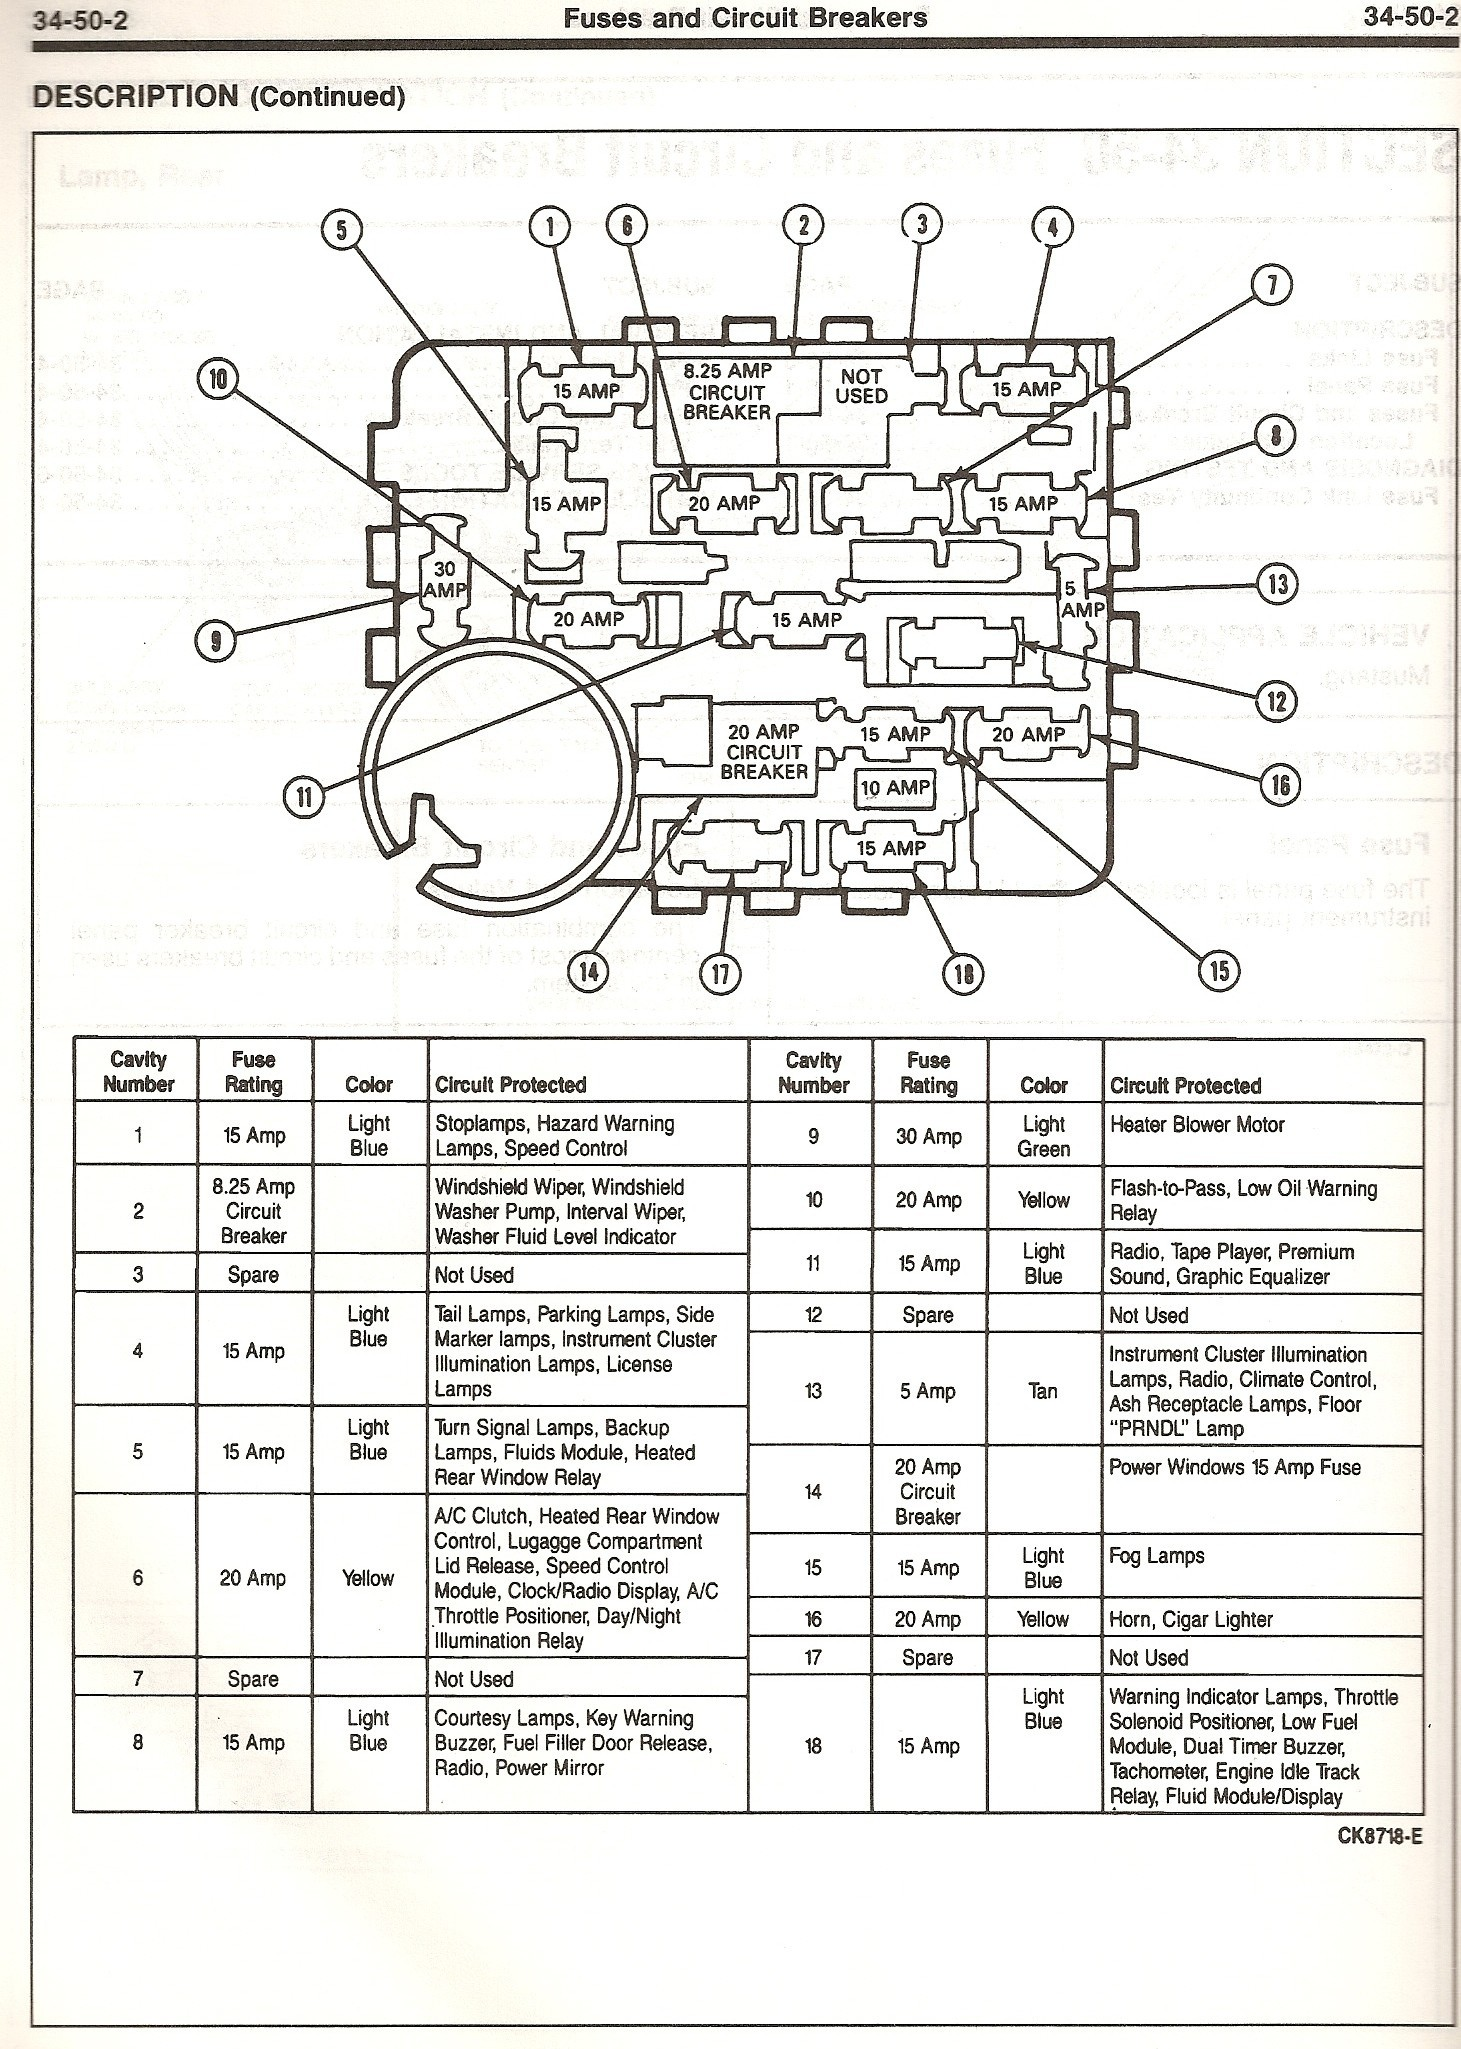 1998 ford Taurus Engine Diagram 2001 ford Ranger Fuse Diagram Wiring Diagram